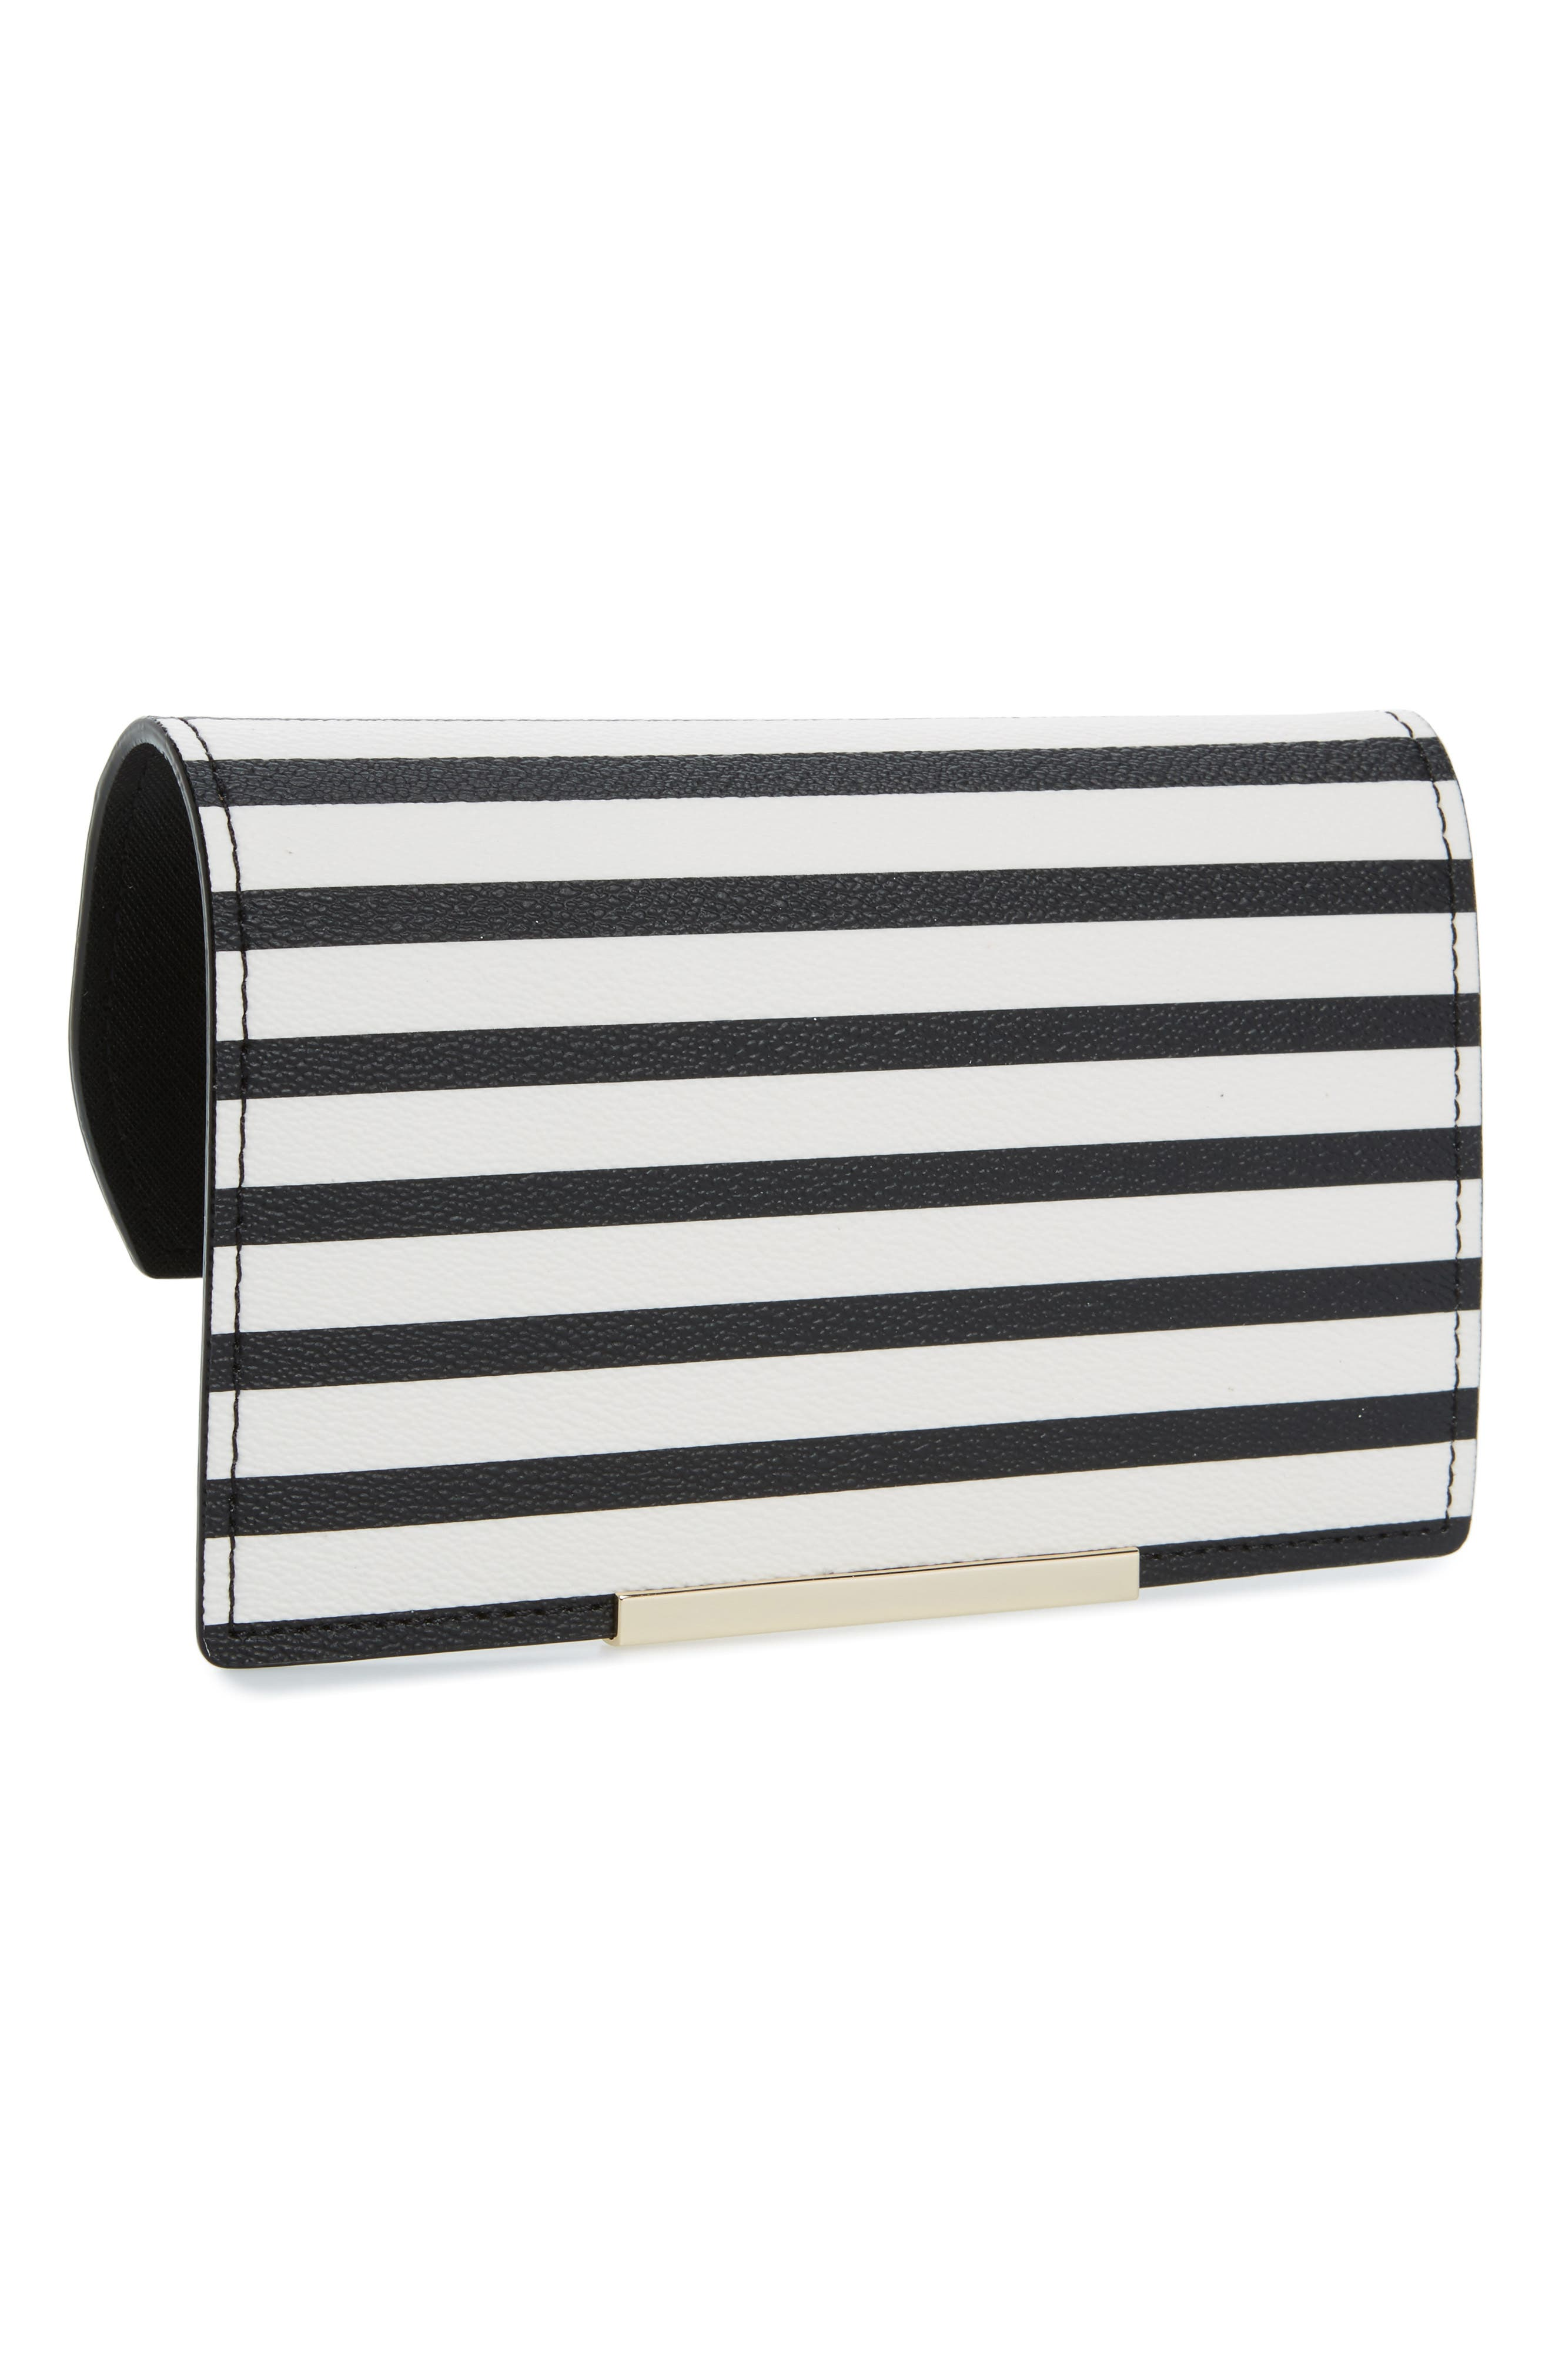 Main Image - kate spade new york make it mine stripe snap-on accent flap